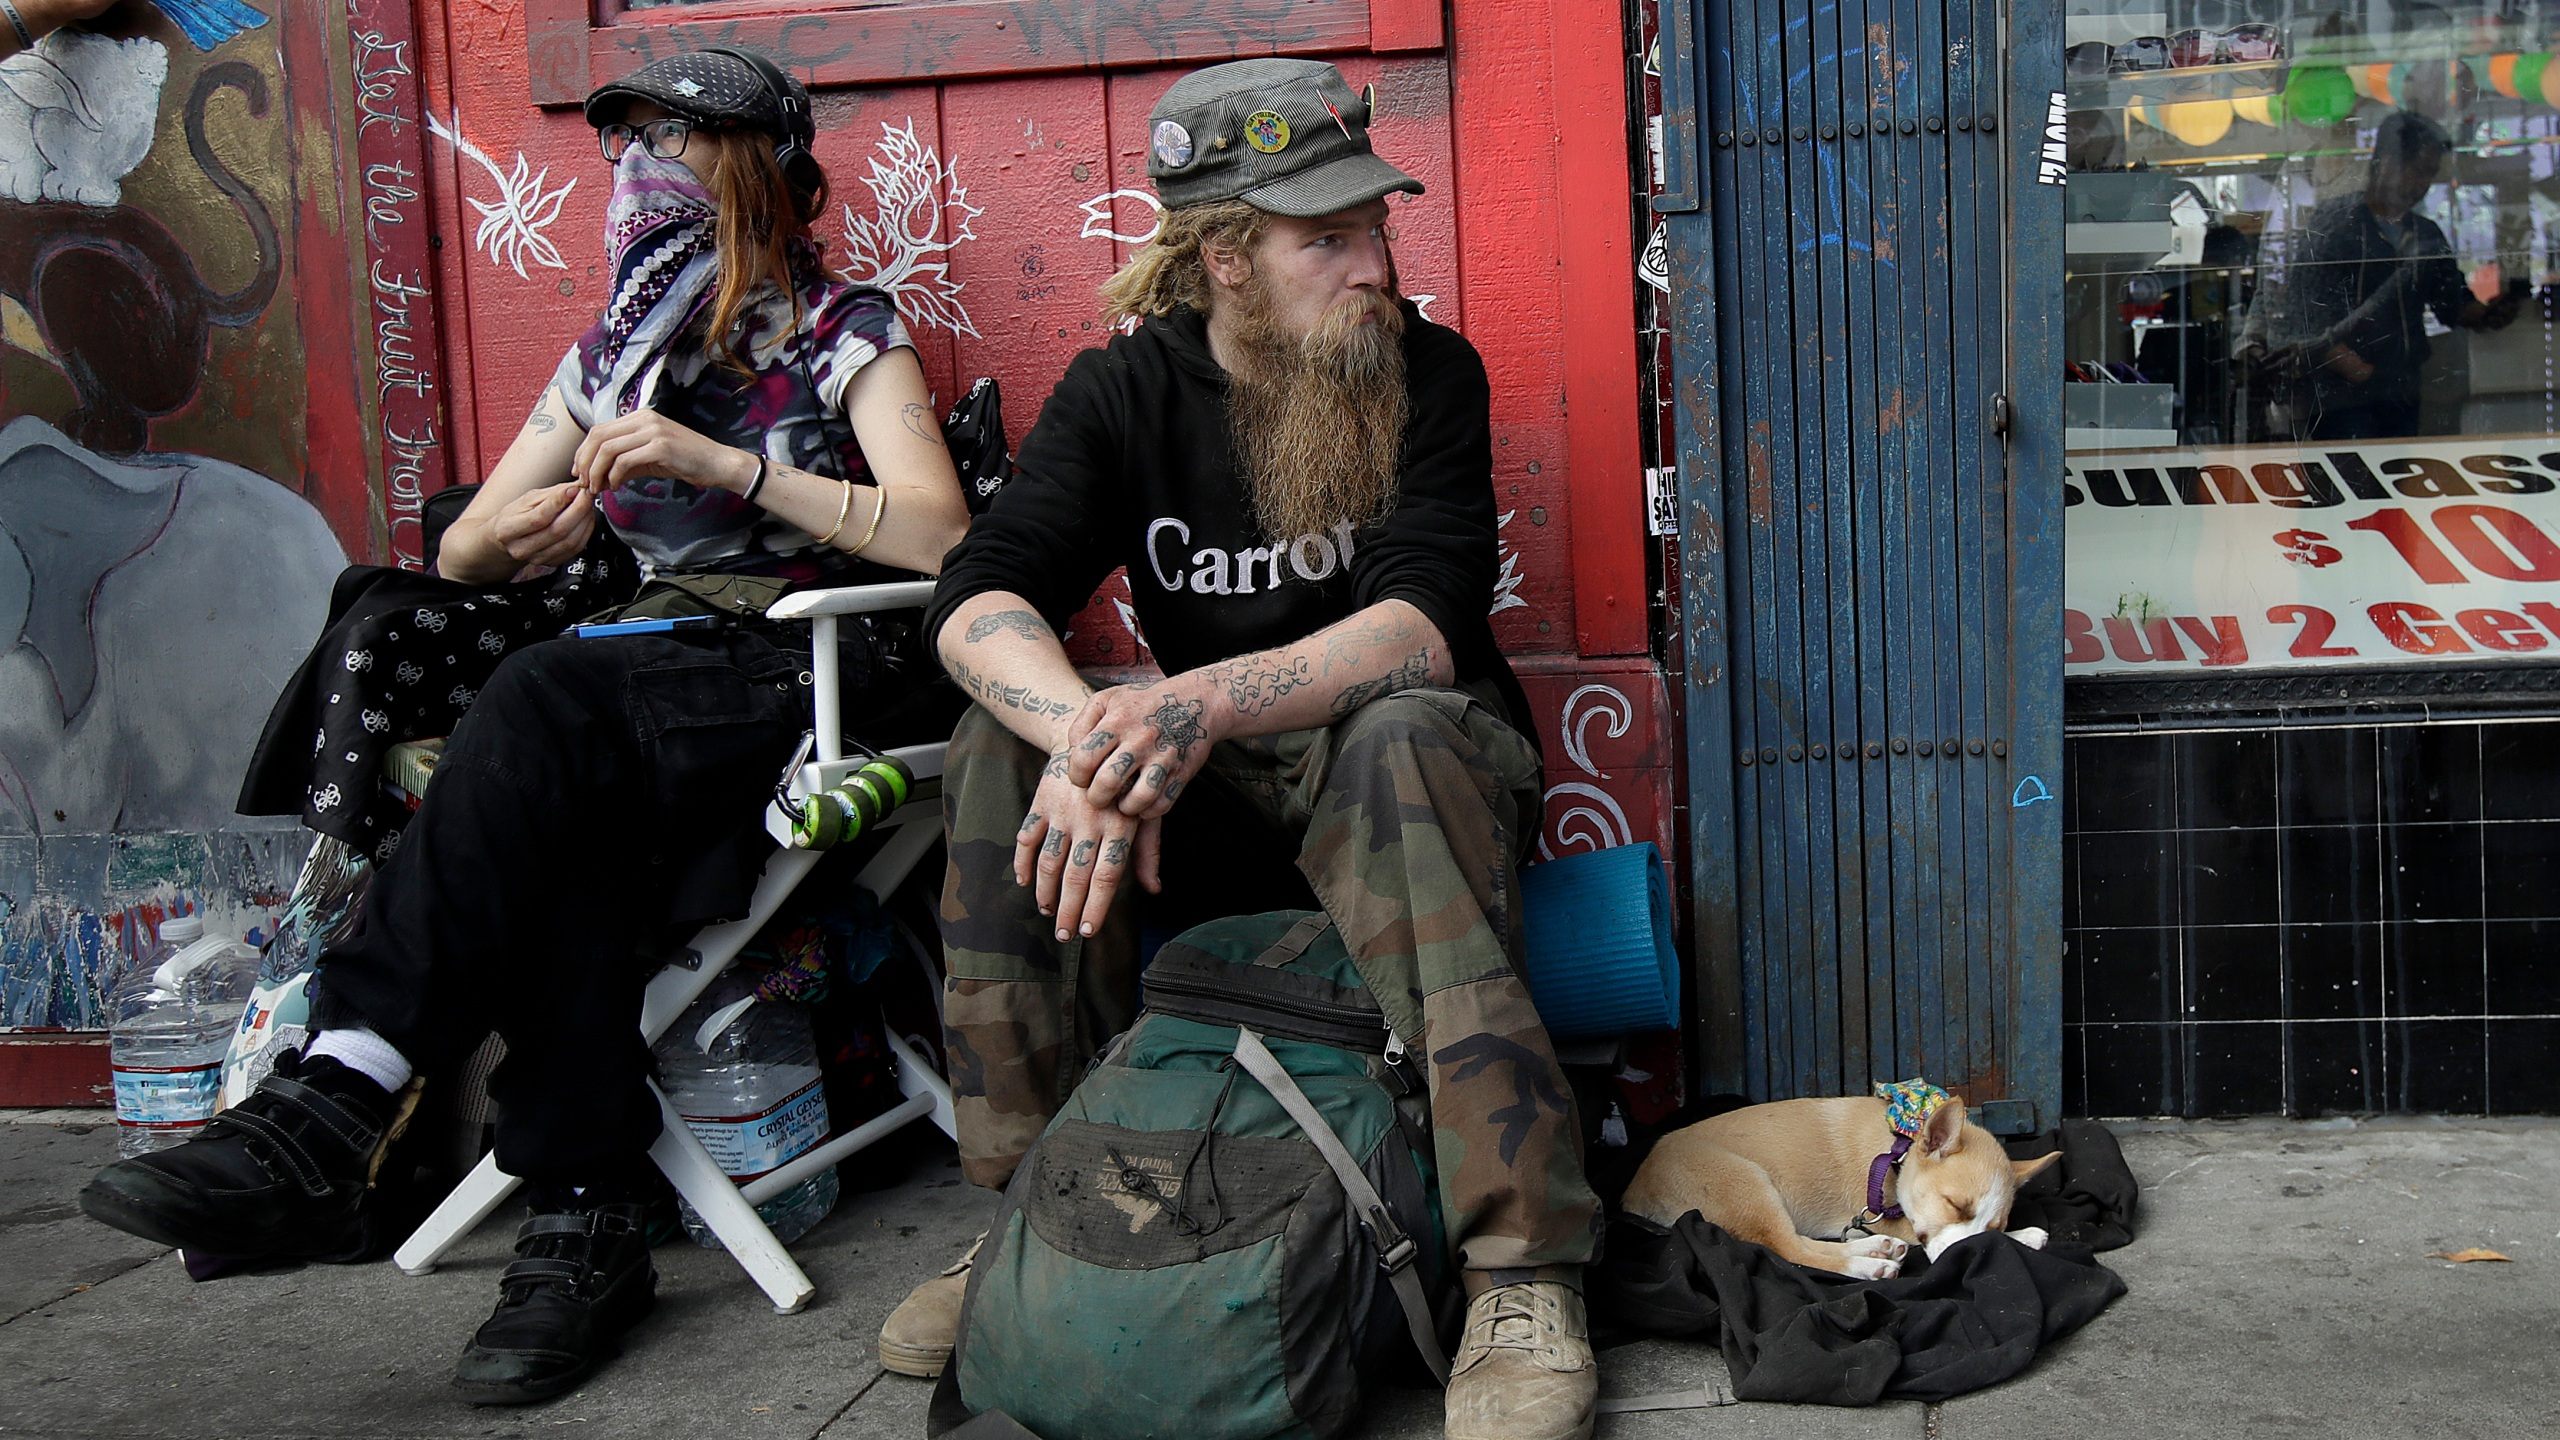 Elections_2018_San_Francisco_Business_Tax_Homelessness_78377-159532.jpg84702370